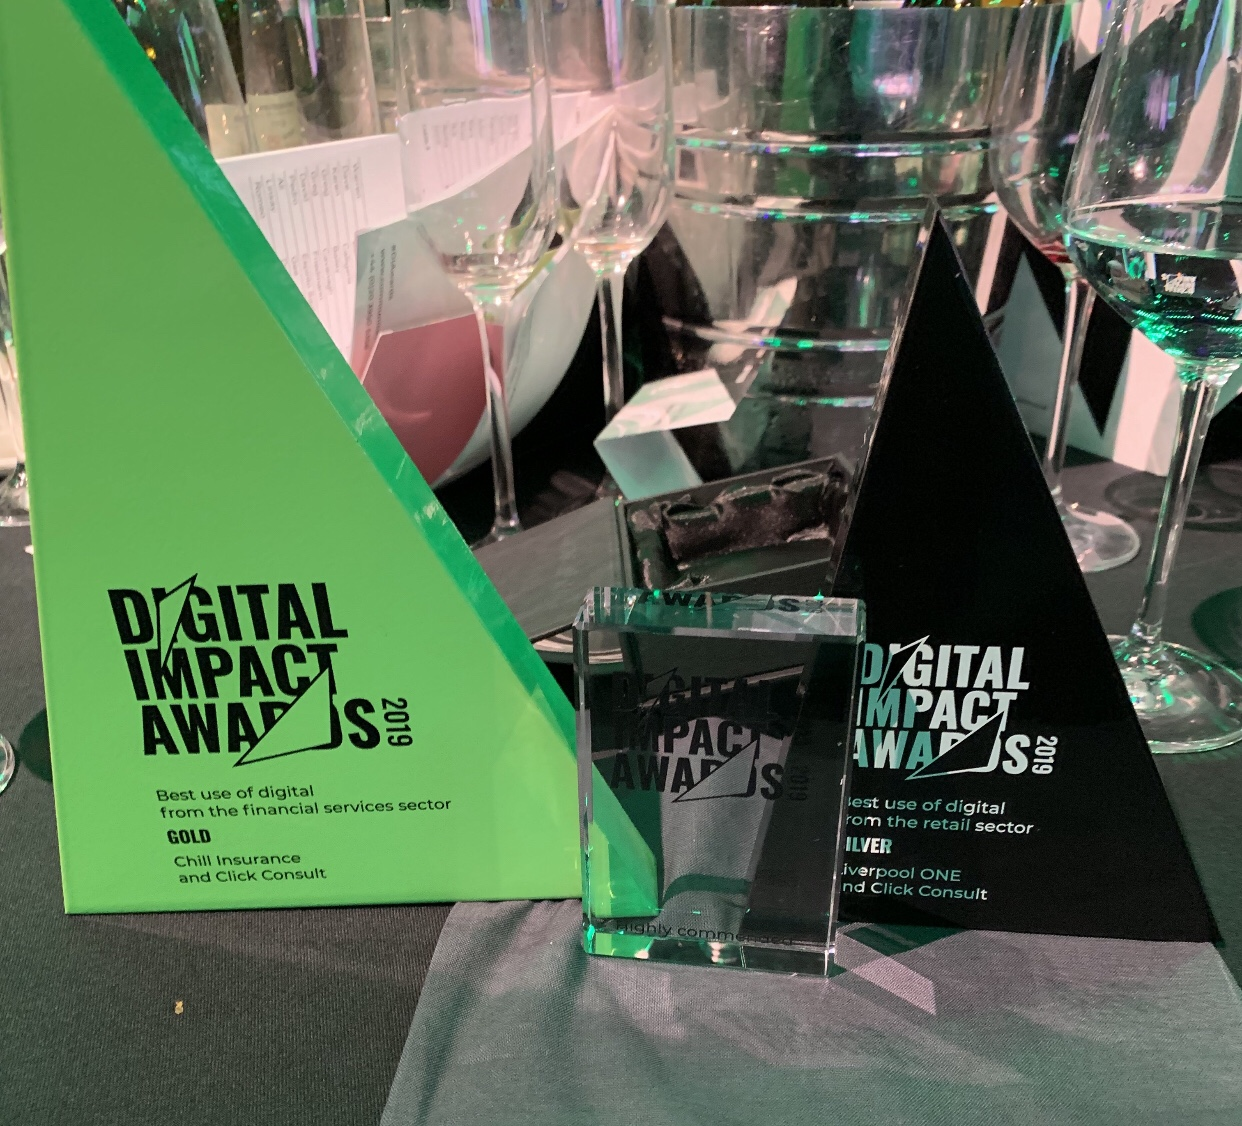 Digital Impact Awards Click Consult Award Win